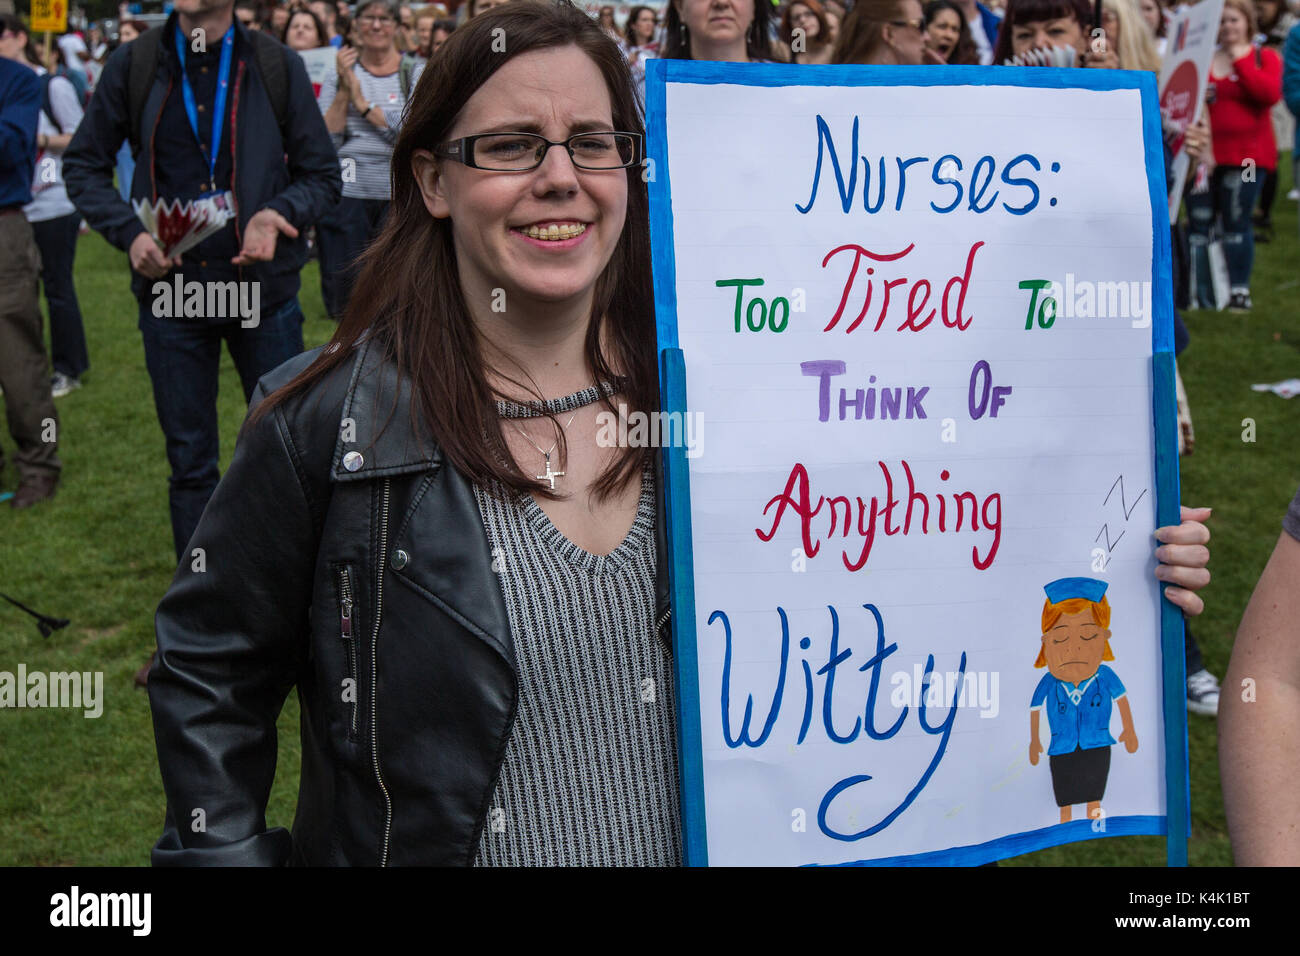 London, UK. 6th Sep, 2017. In a protest organised by the Royal College of Nursing, nurses rallied in central London - Stock Image